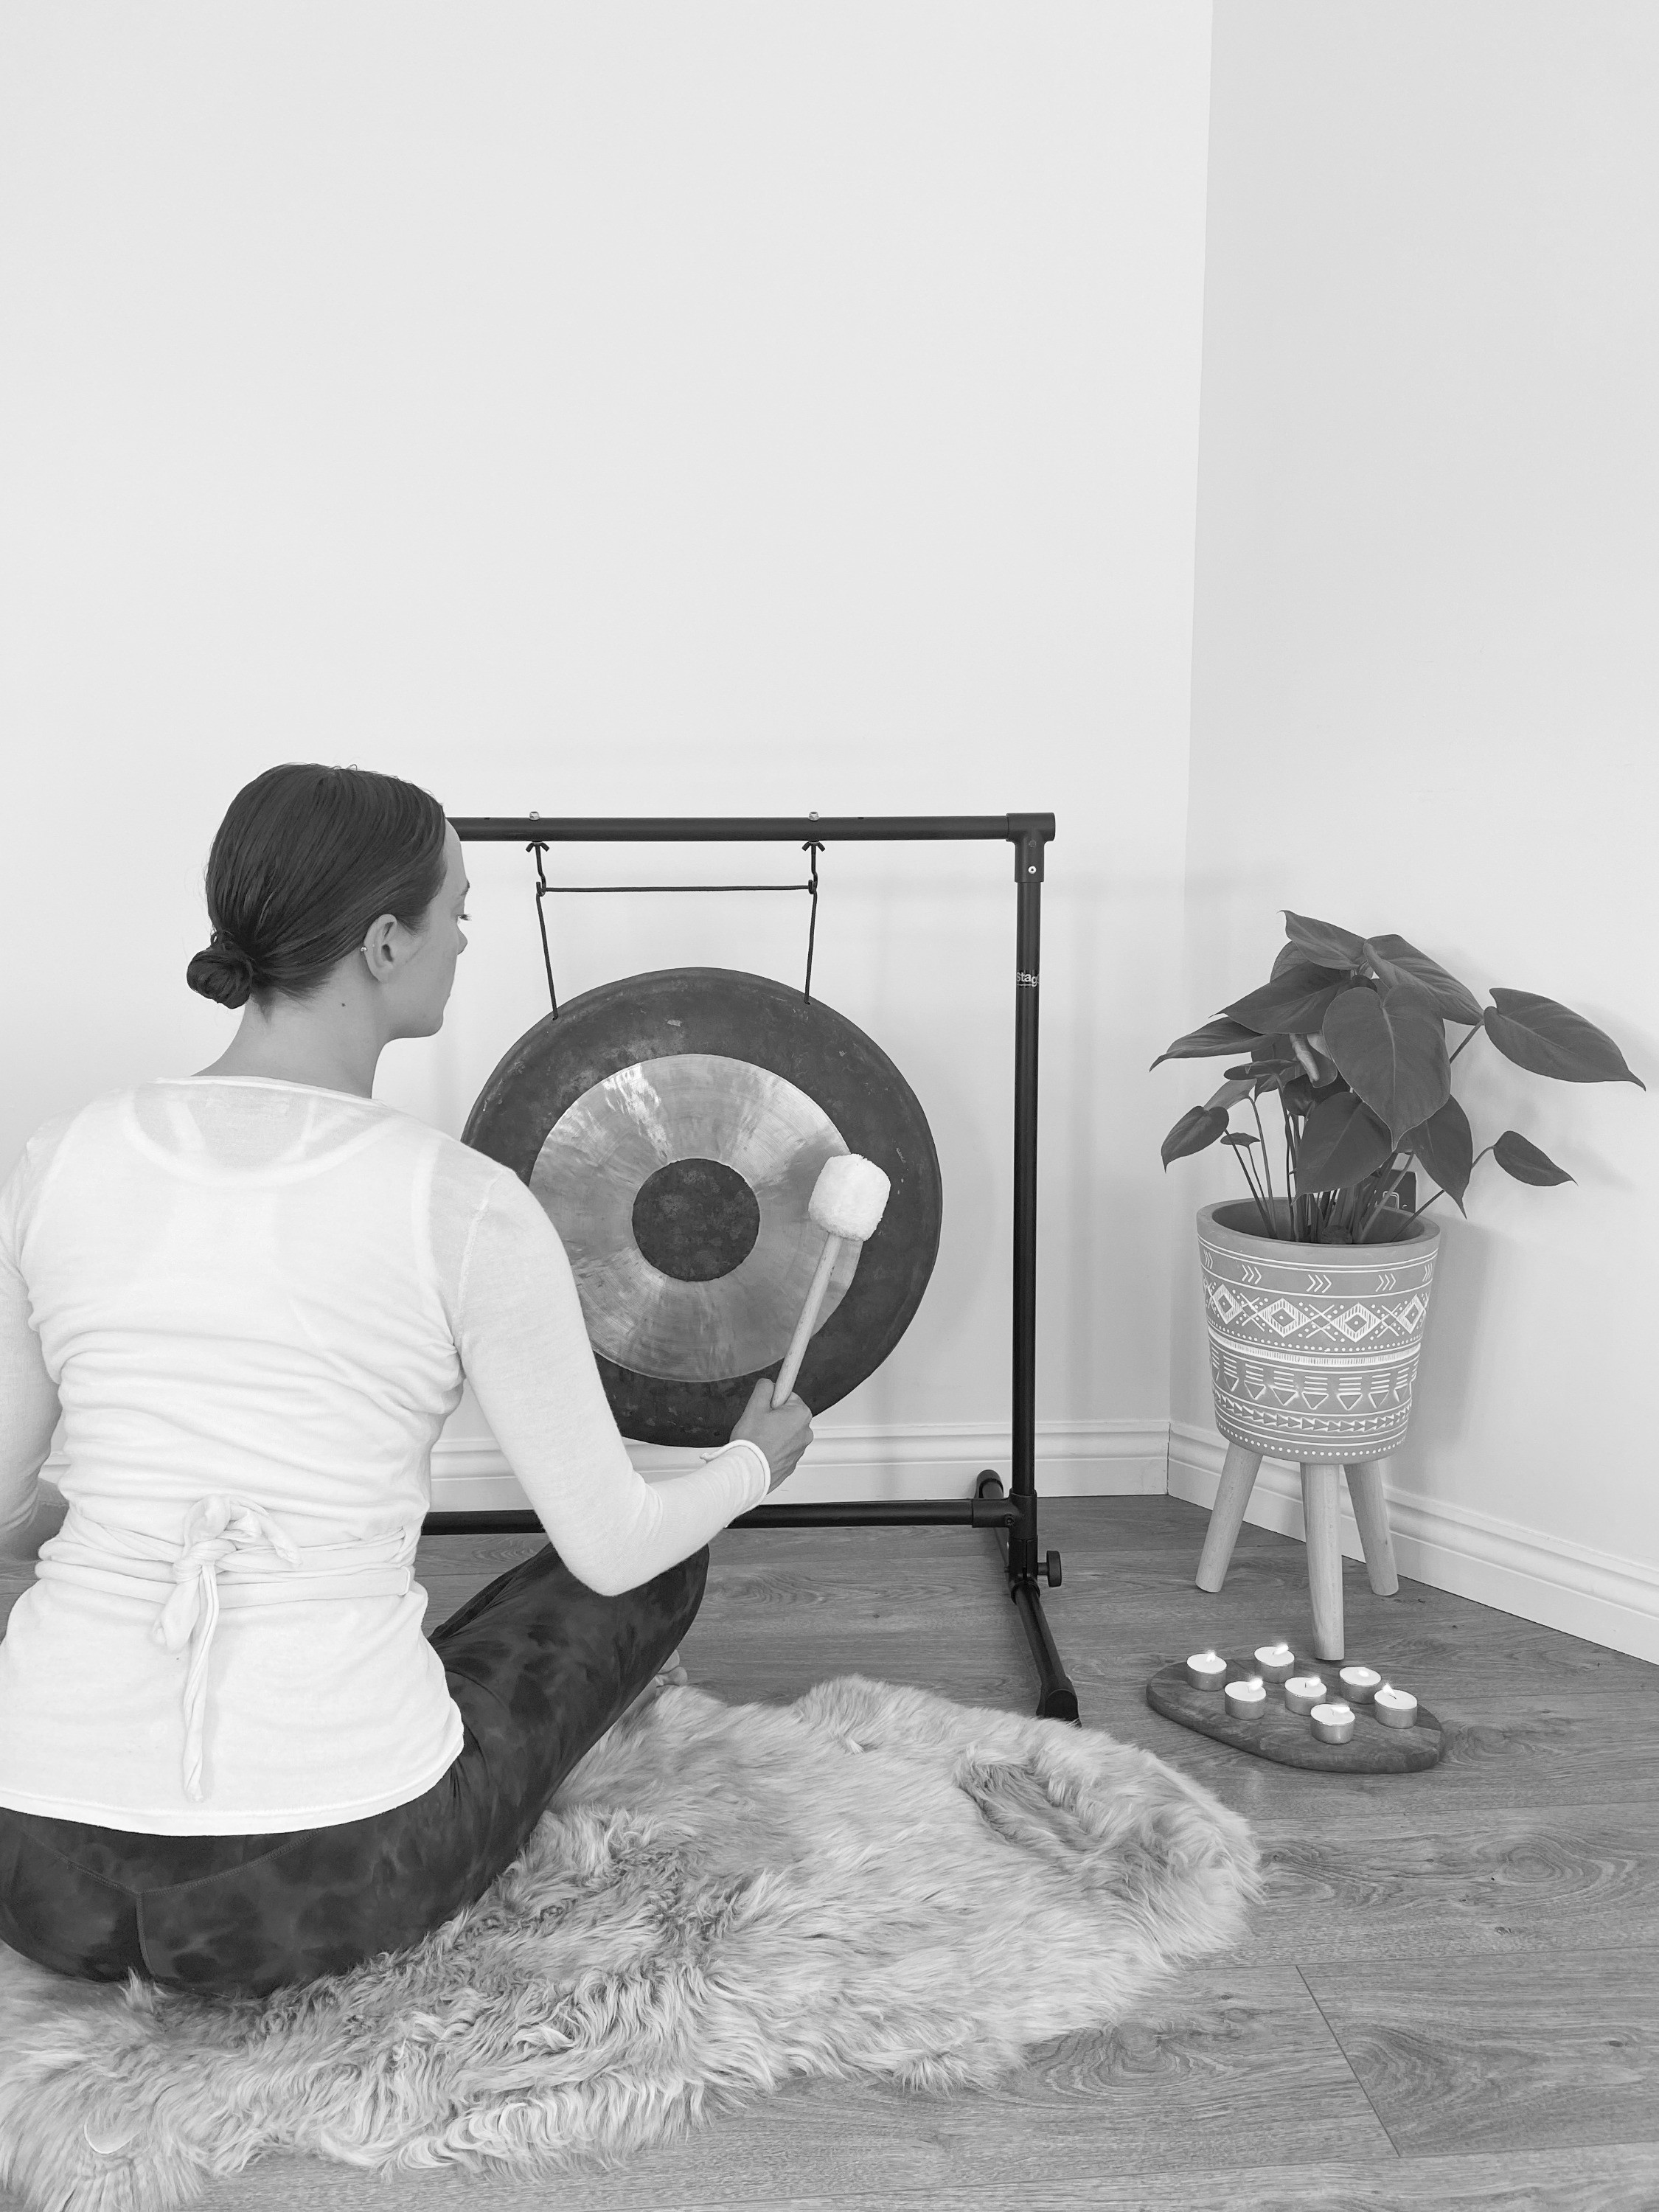 Gong Bath at Freedom Within Life